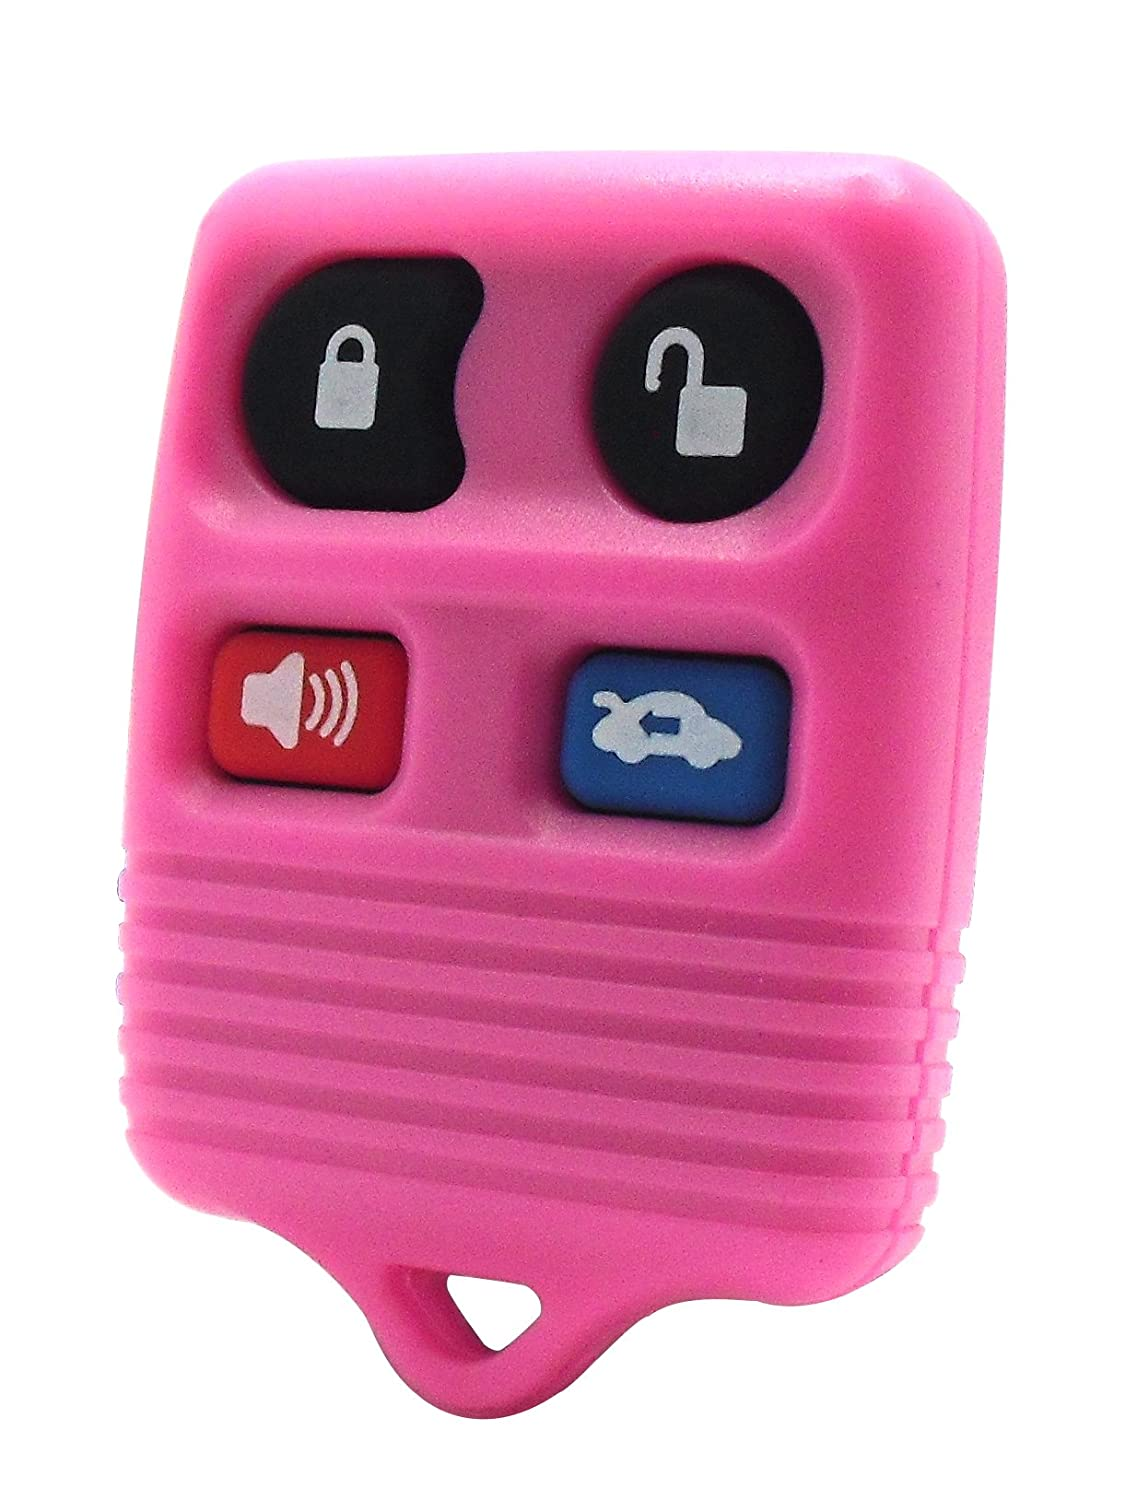 2003 03 Ford Taurus Pink Keyless Entry Remote - 4 Button